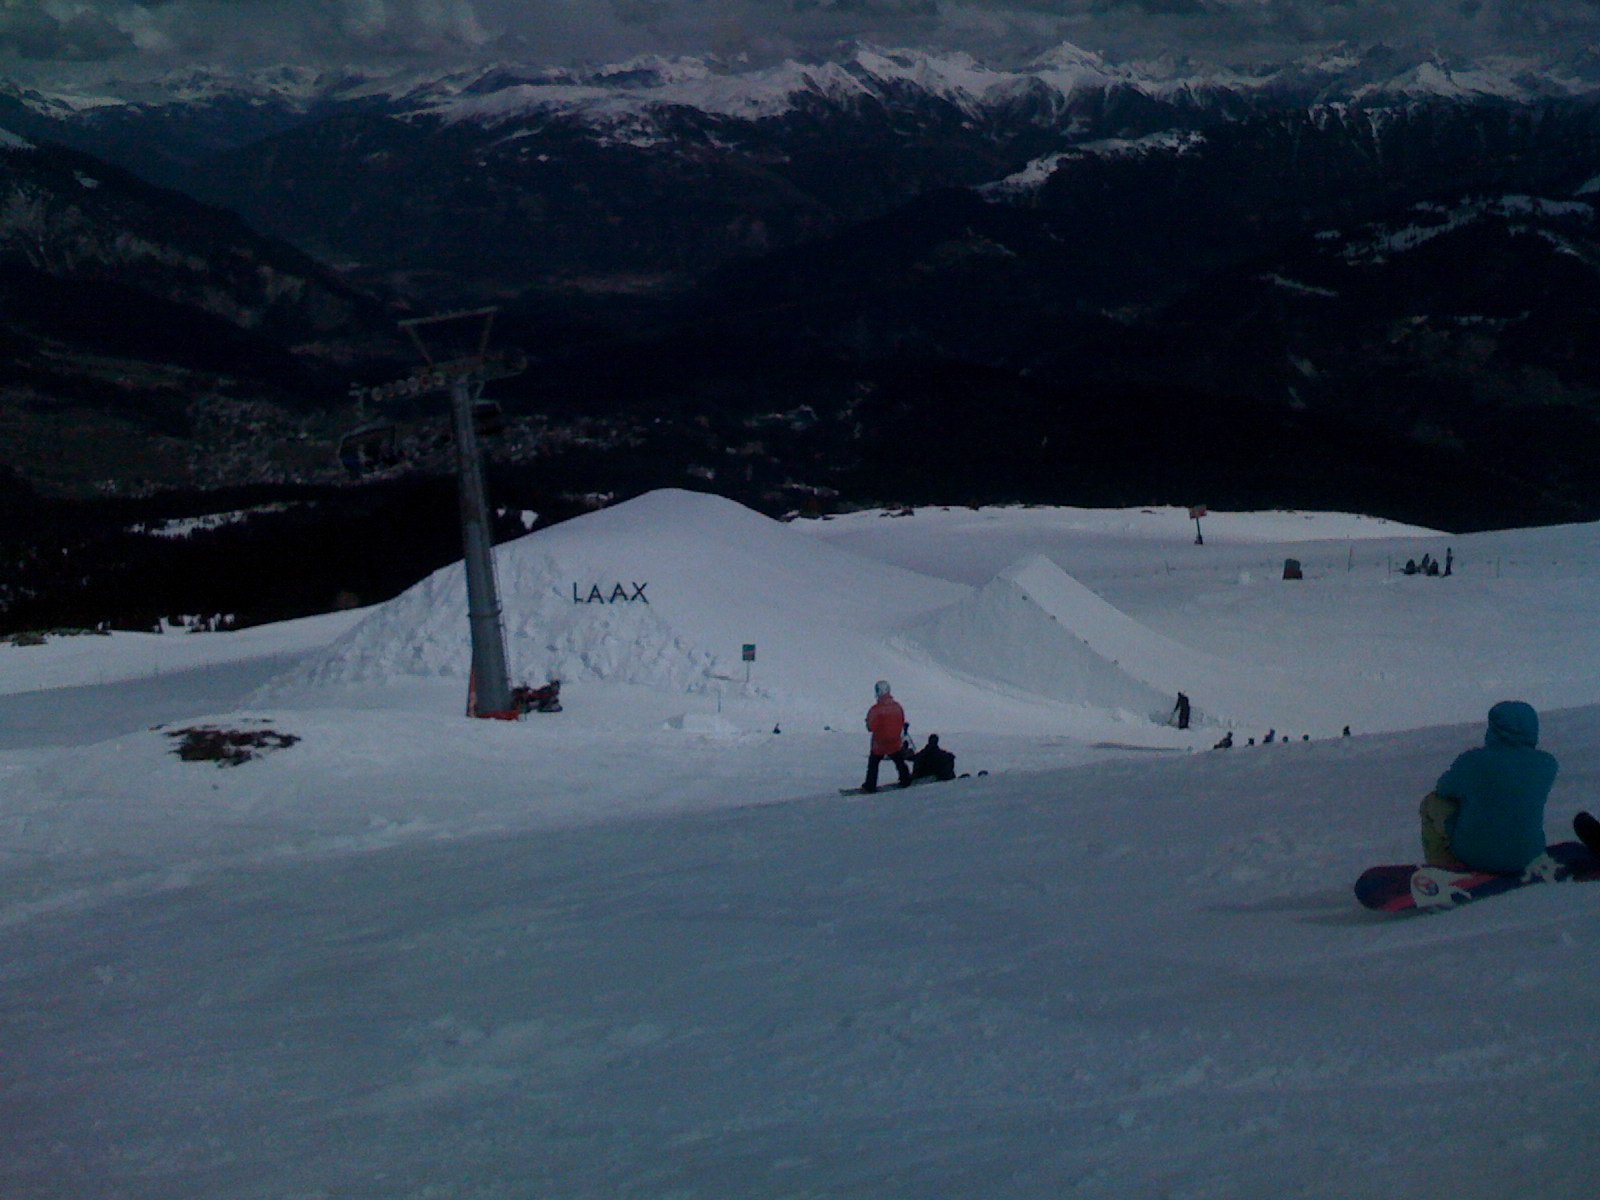 Big one in Laax